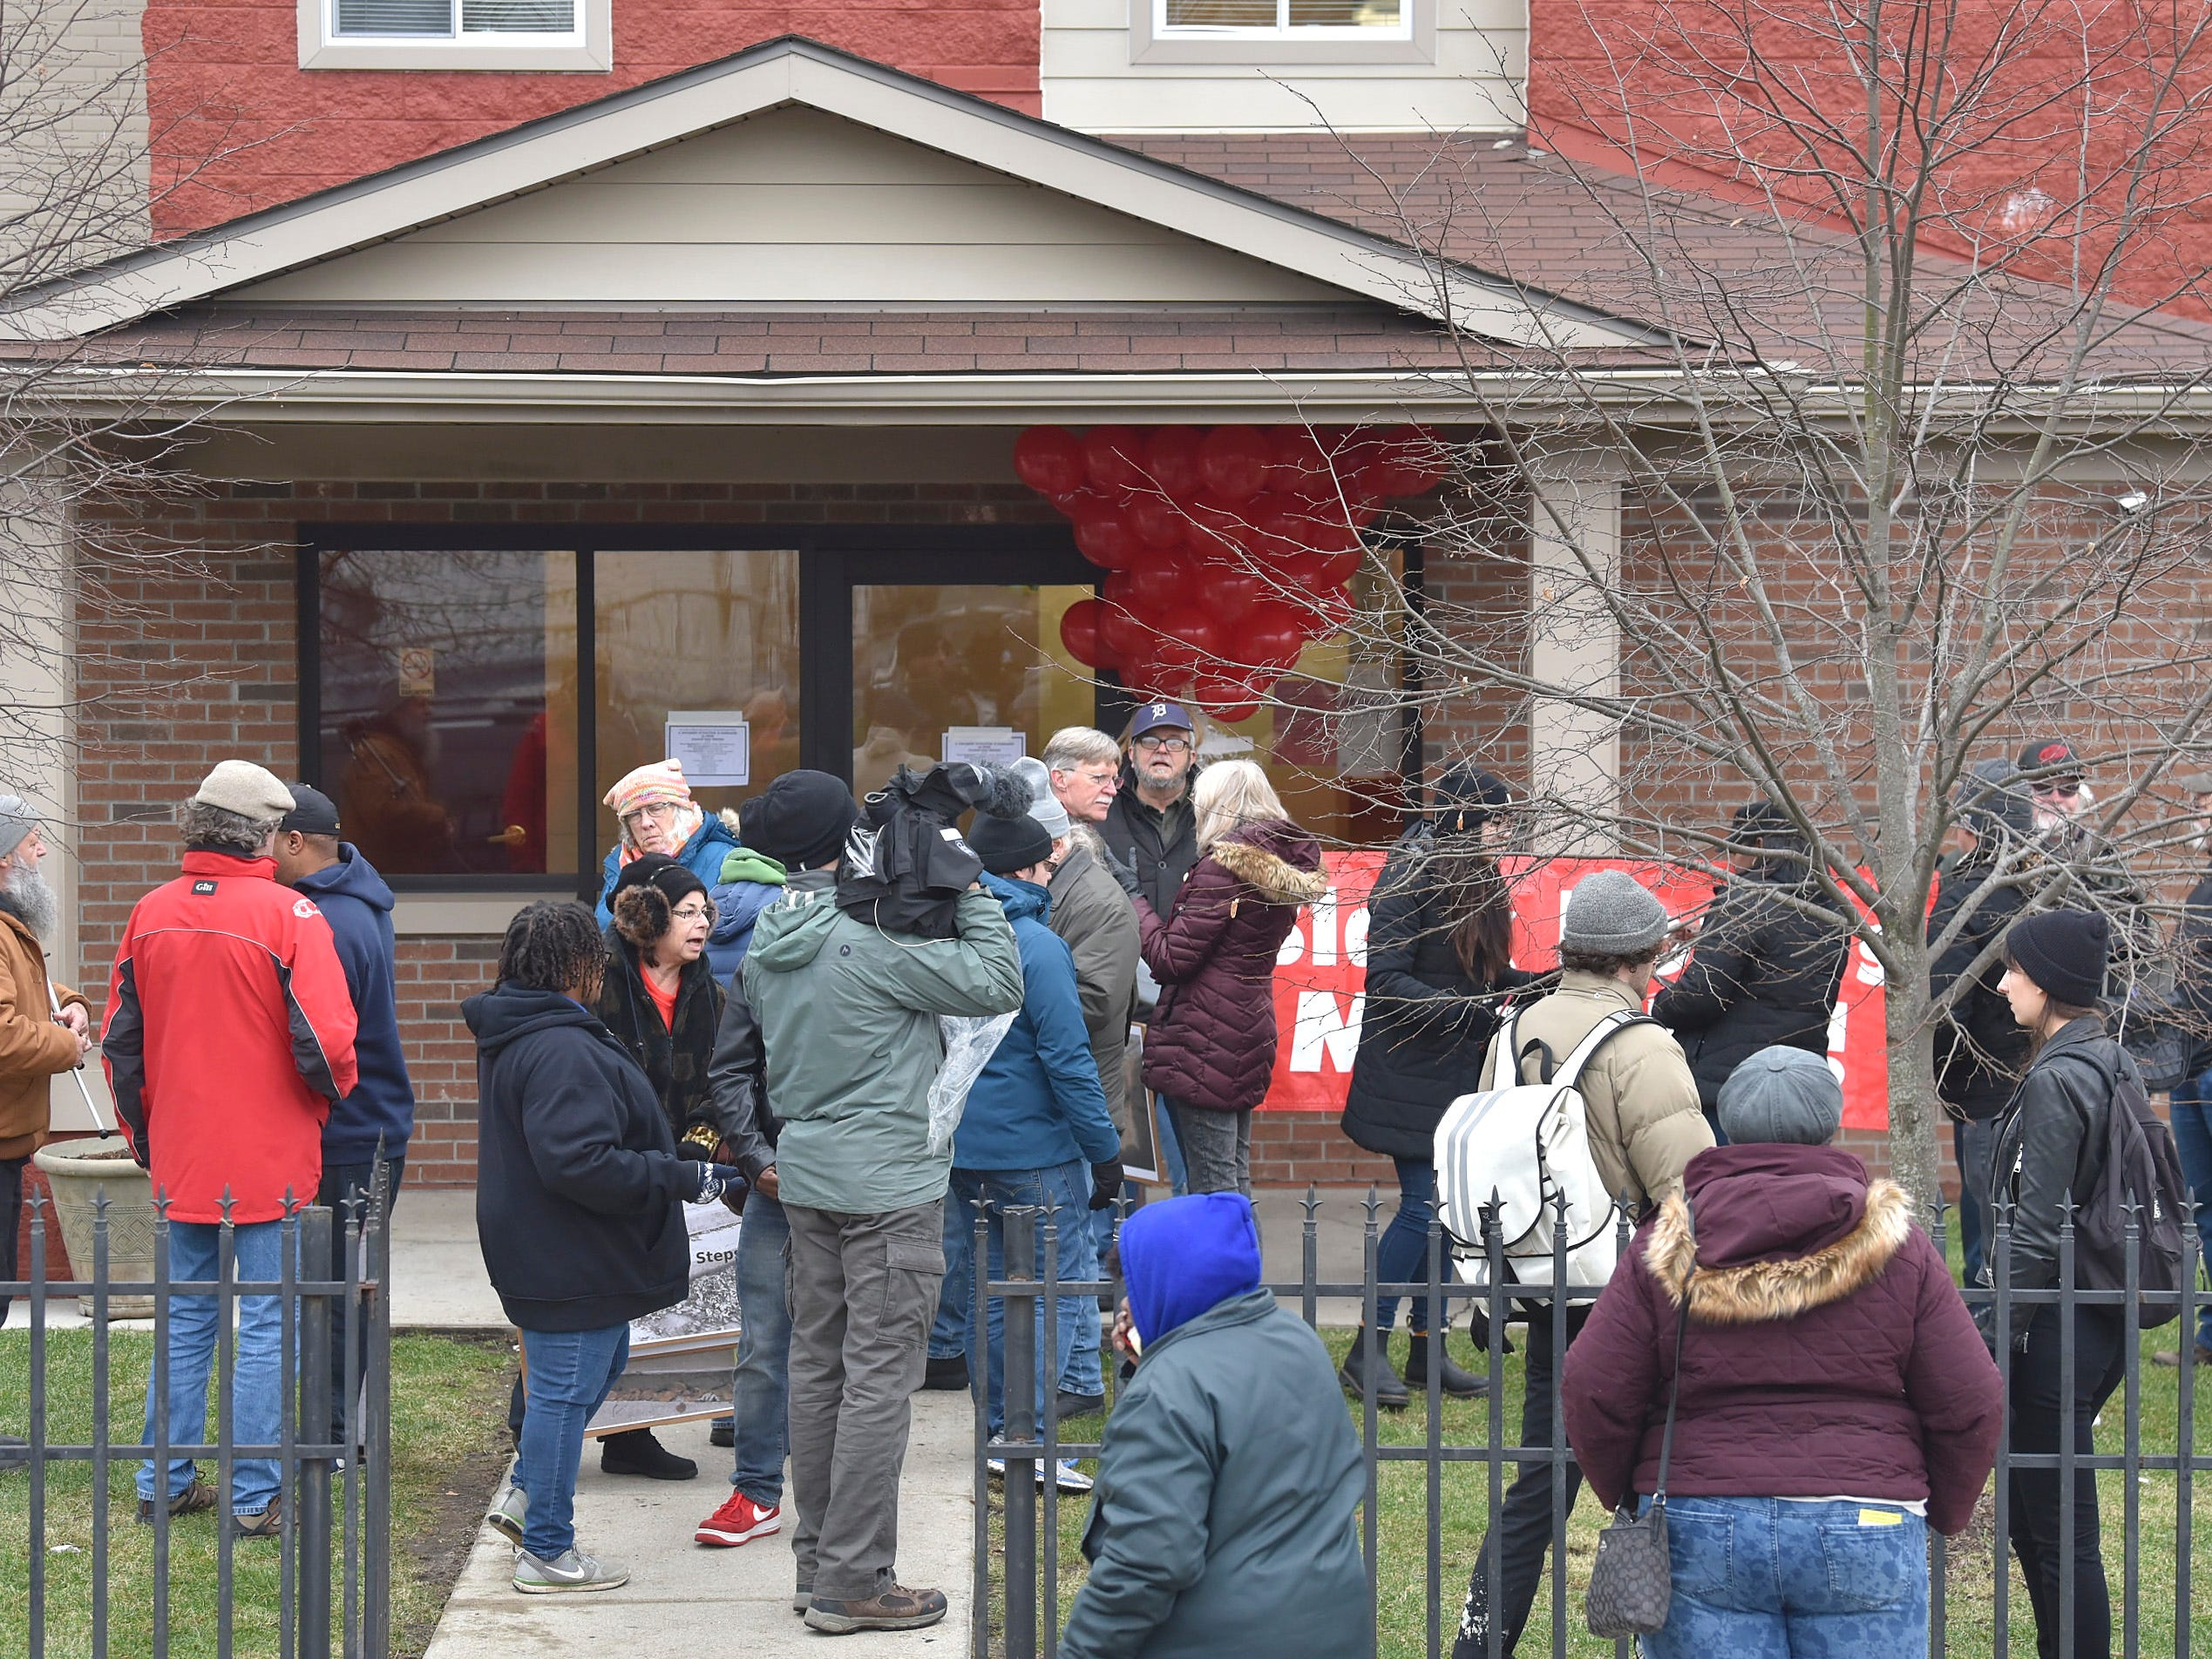 More than 25 residents and supporters of Brightmoor Homes post eviction notices for the KMG Prestige Management Company at their offices inside the Rouge Woods Apartments complex, on Fenkell at Hazelton, Saturday morning.